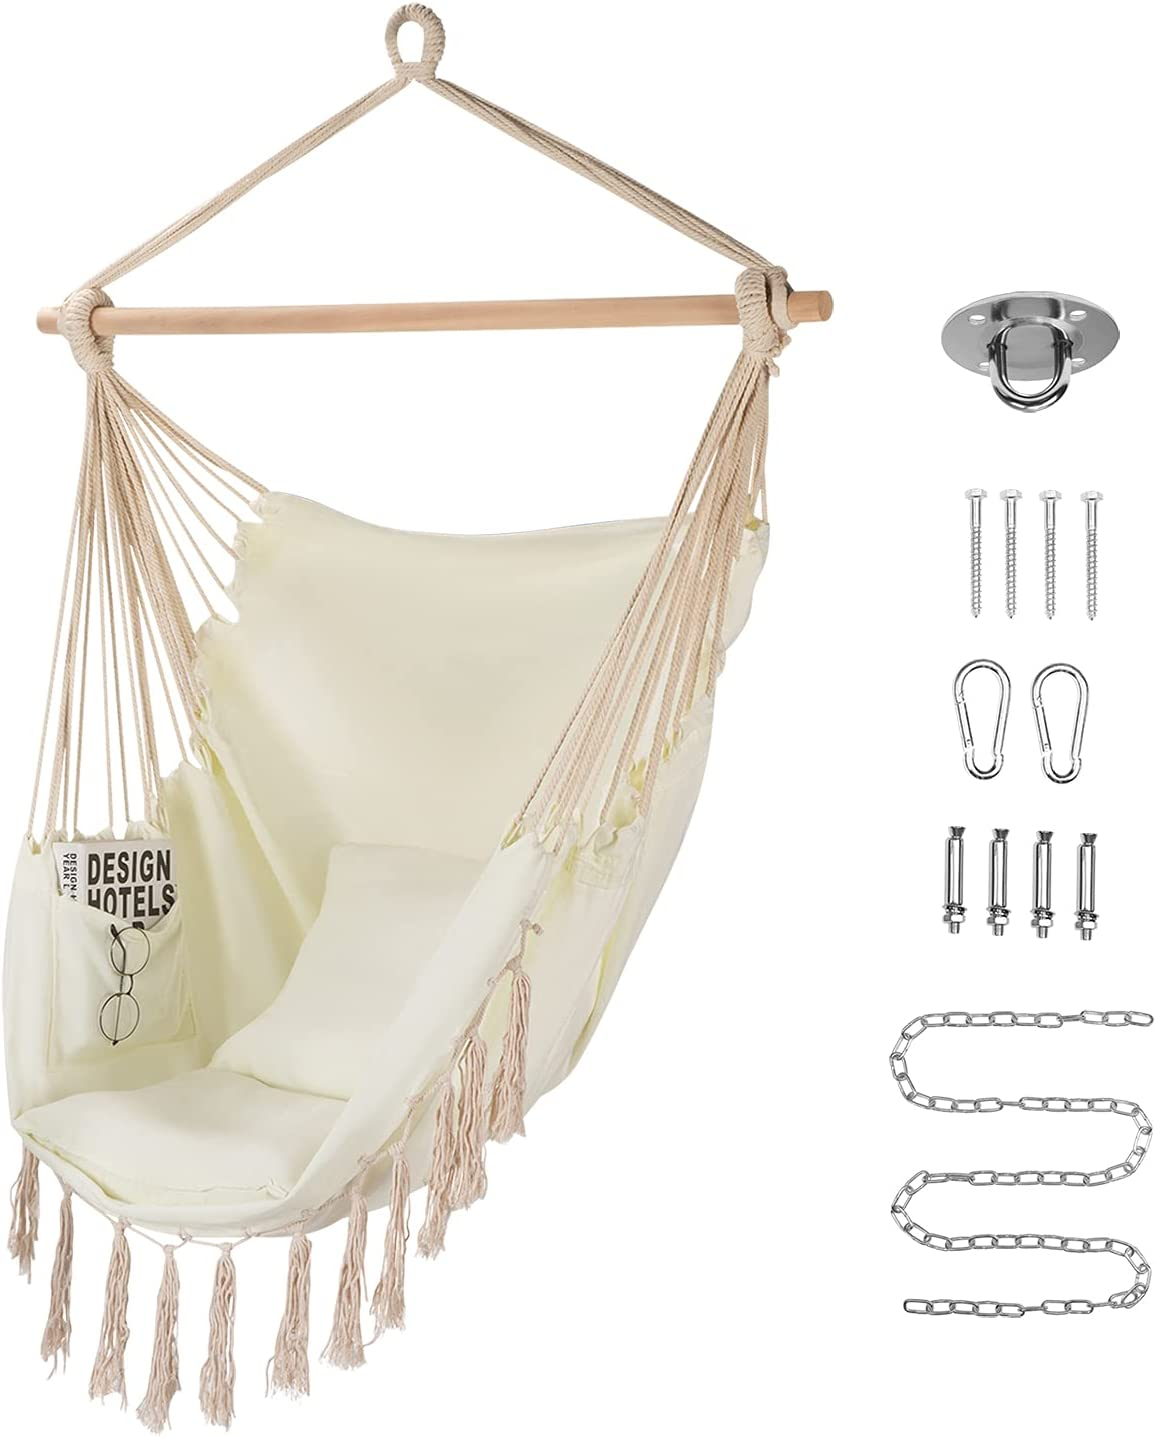 Homchwell Hammock Chair with Hanging Hardware Kit $27.50 Coupon